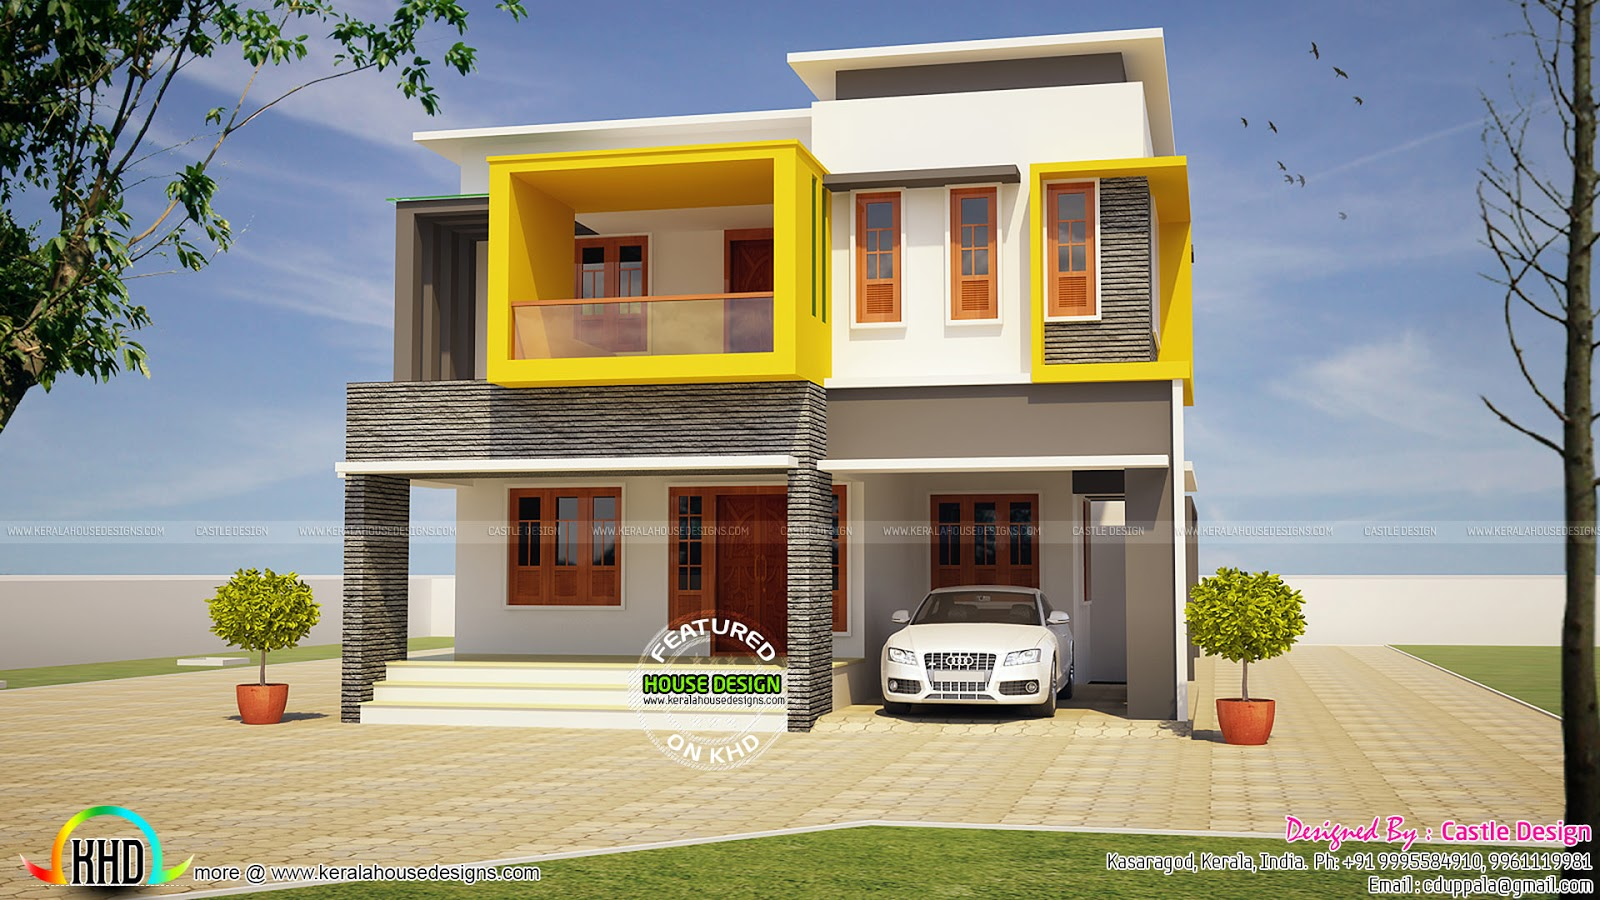 Urinal Front Elevation : Modern house architecture by castle design kerala home